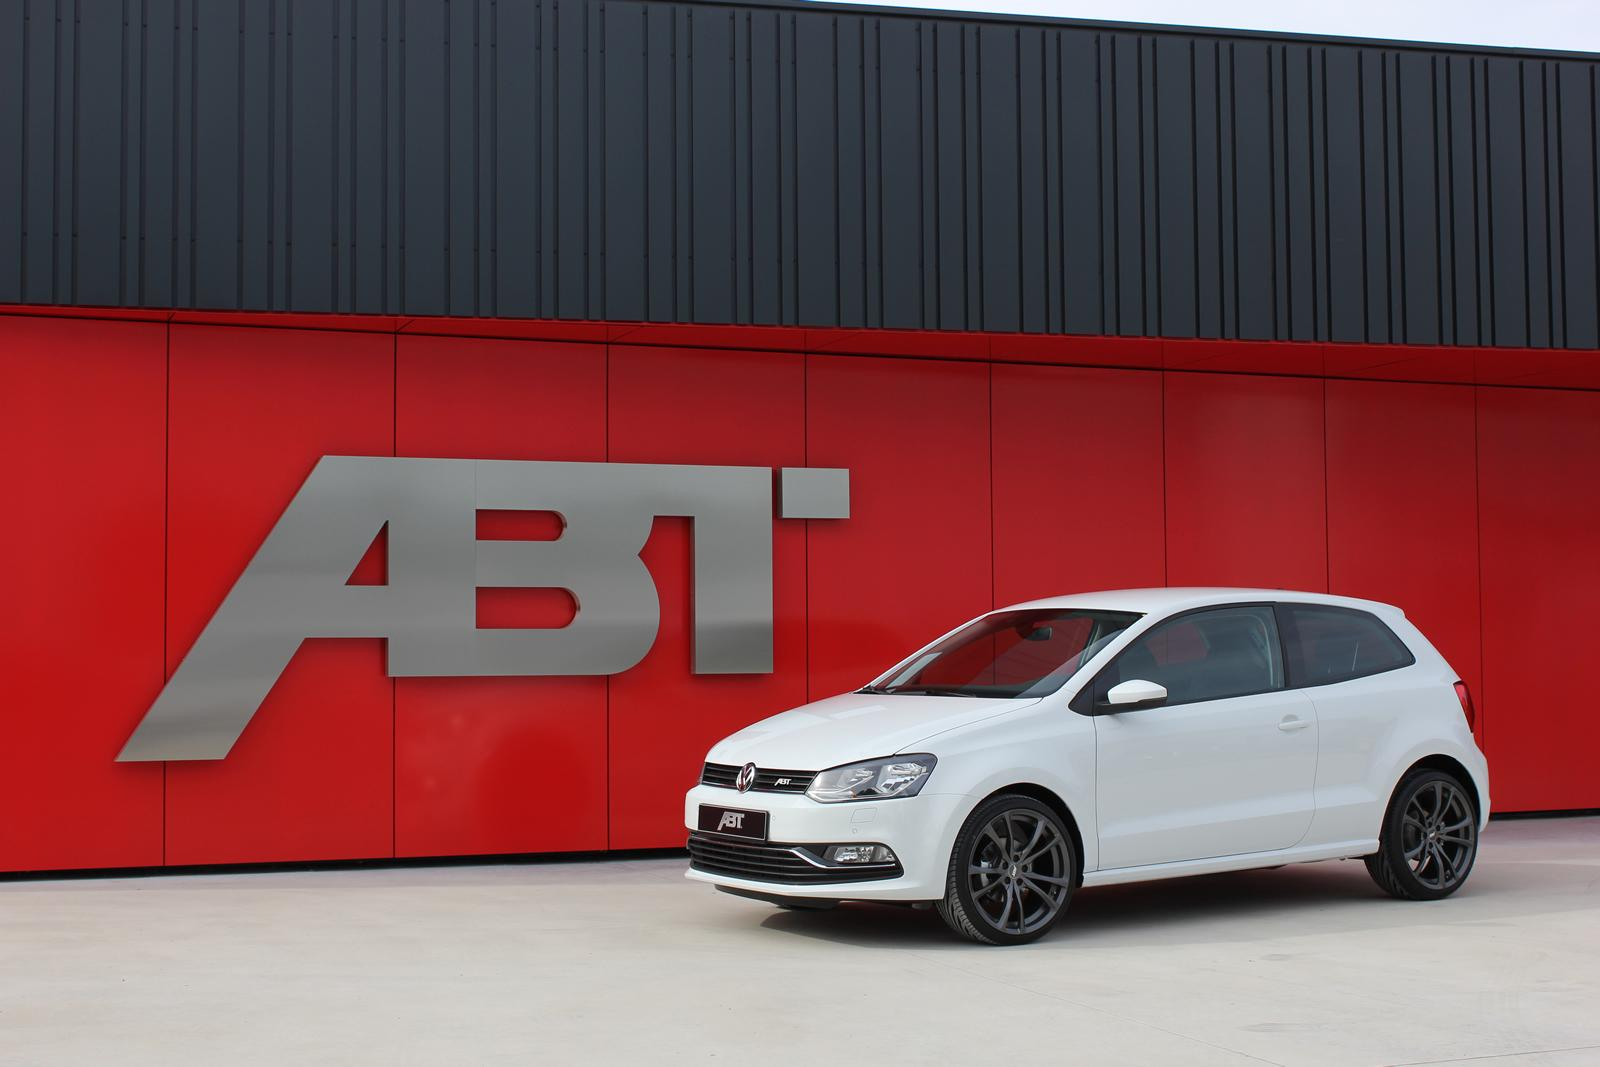 Abt Makes 230 Hp Volkswagen Polo To Celebrate Model S 40th Anniversary